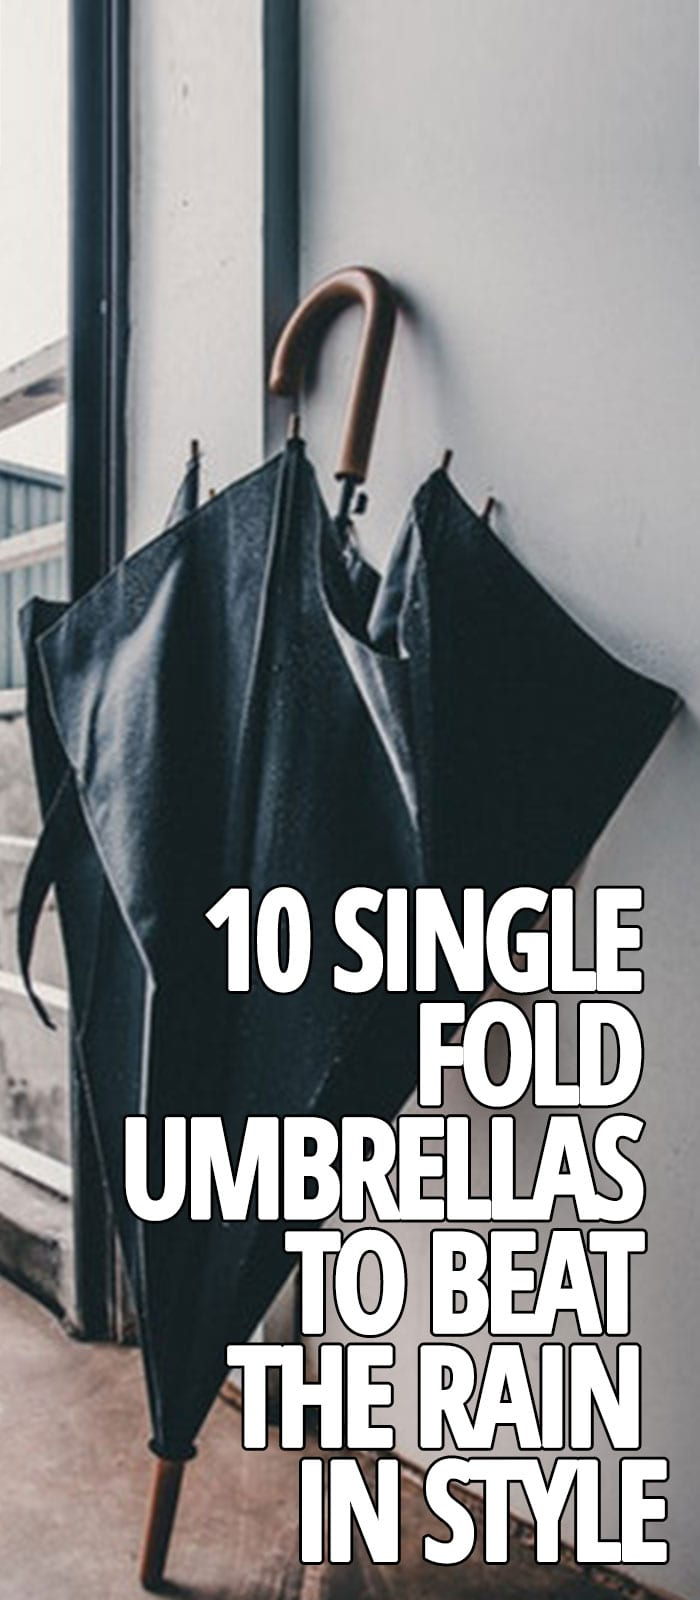 SINGLE-FOLD-UMBRELLAS-TO-BEAT-THE-RAIN-IN-STYLE